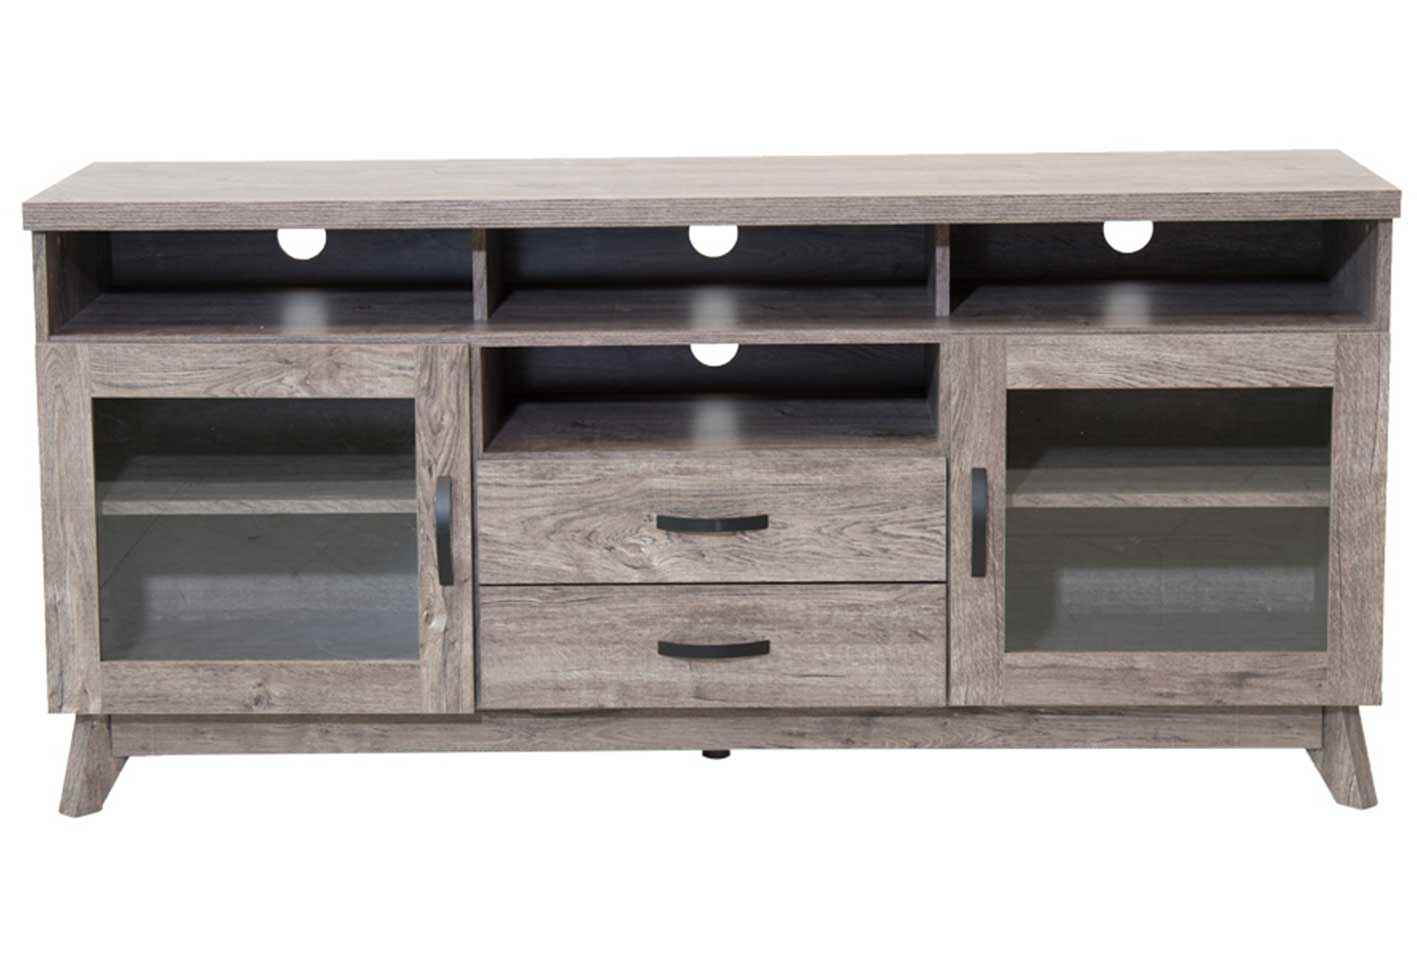 Hwf001 Tv Stand Plasma Tv Stands For Sale Cheap Furniture